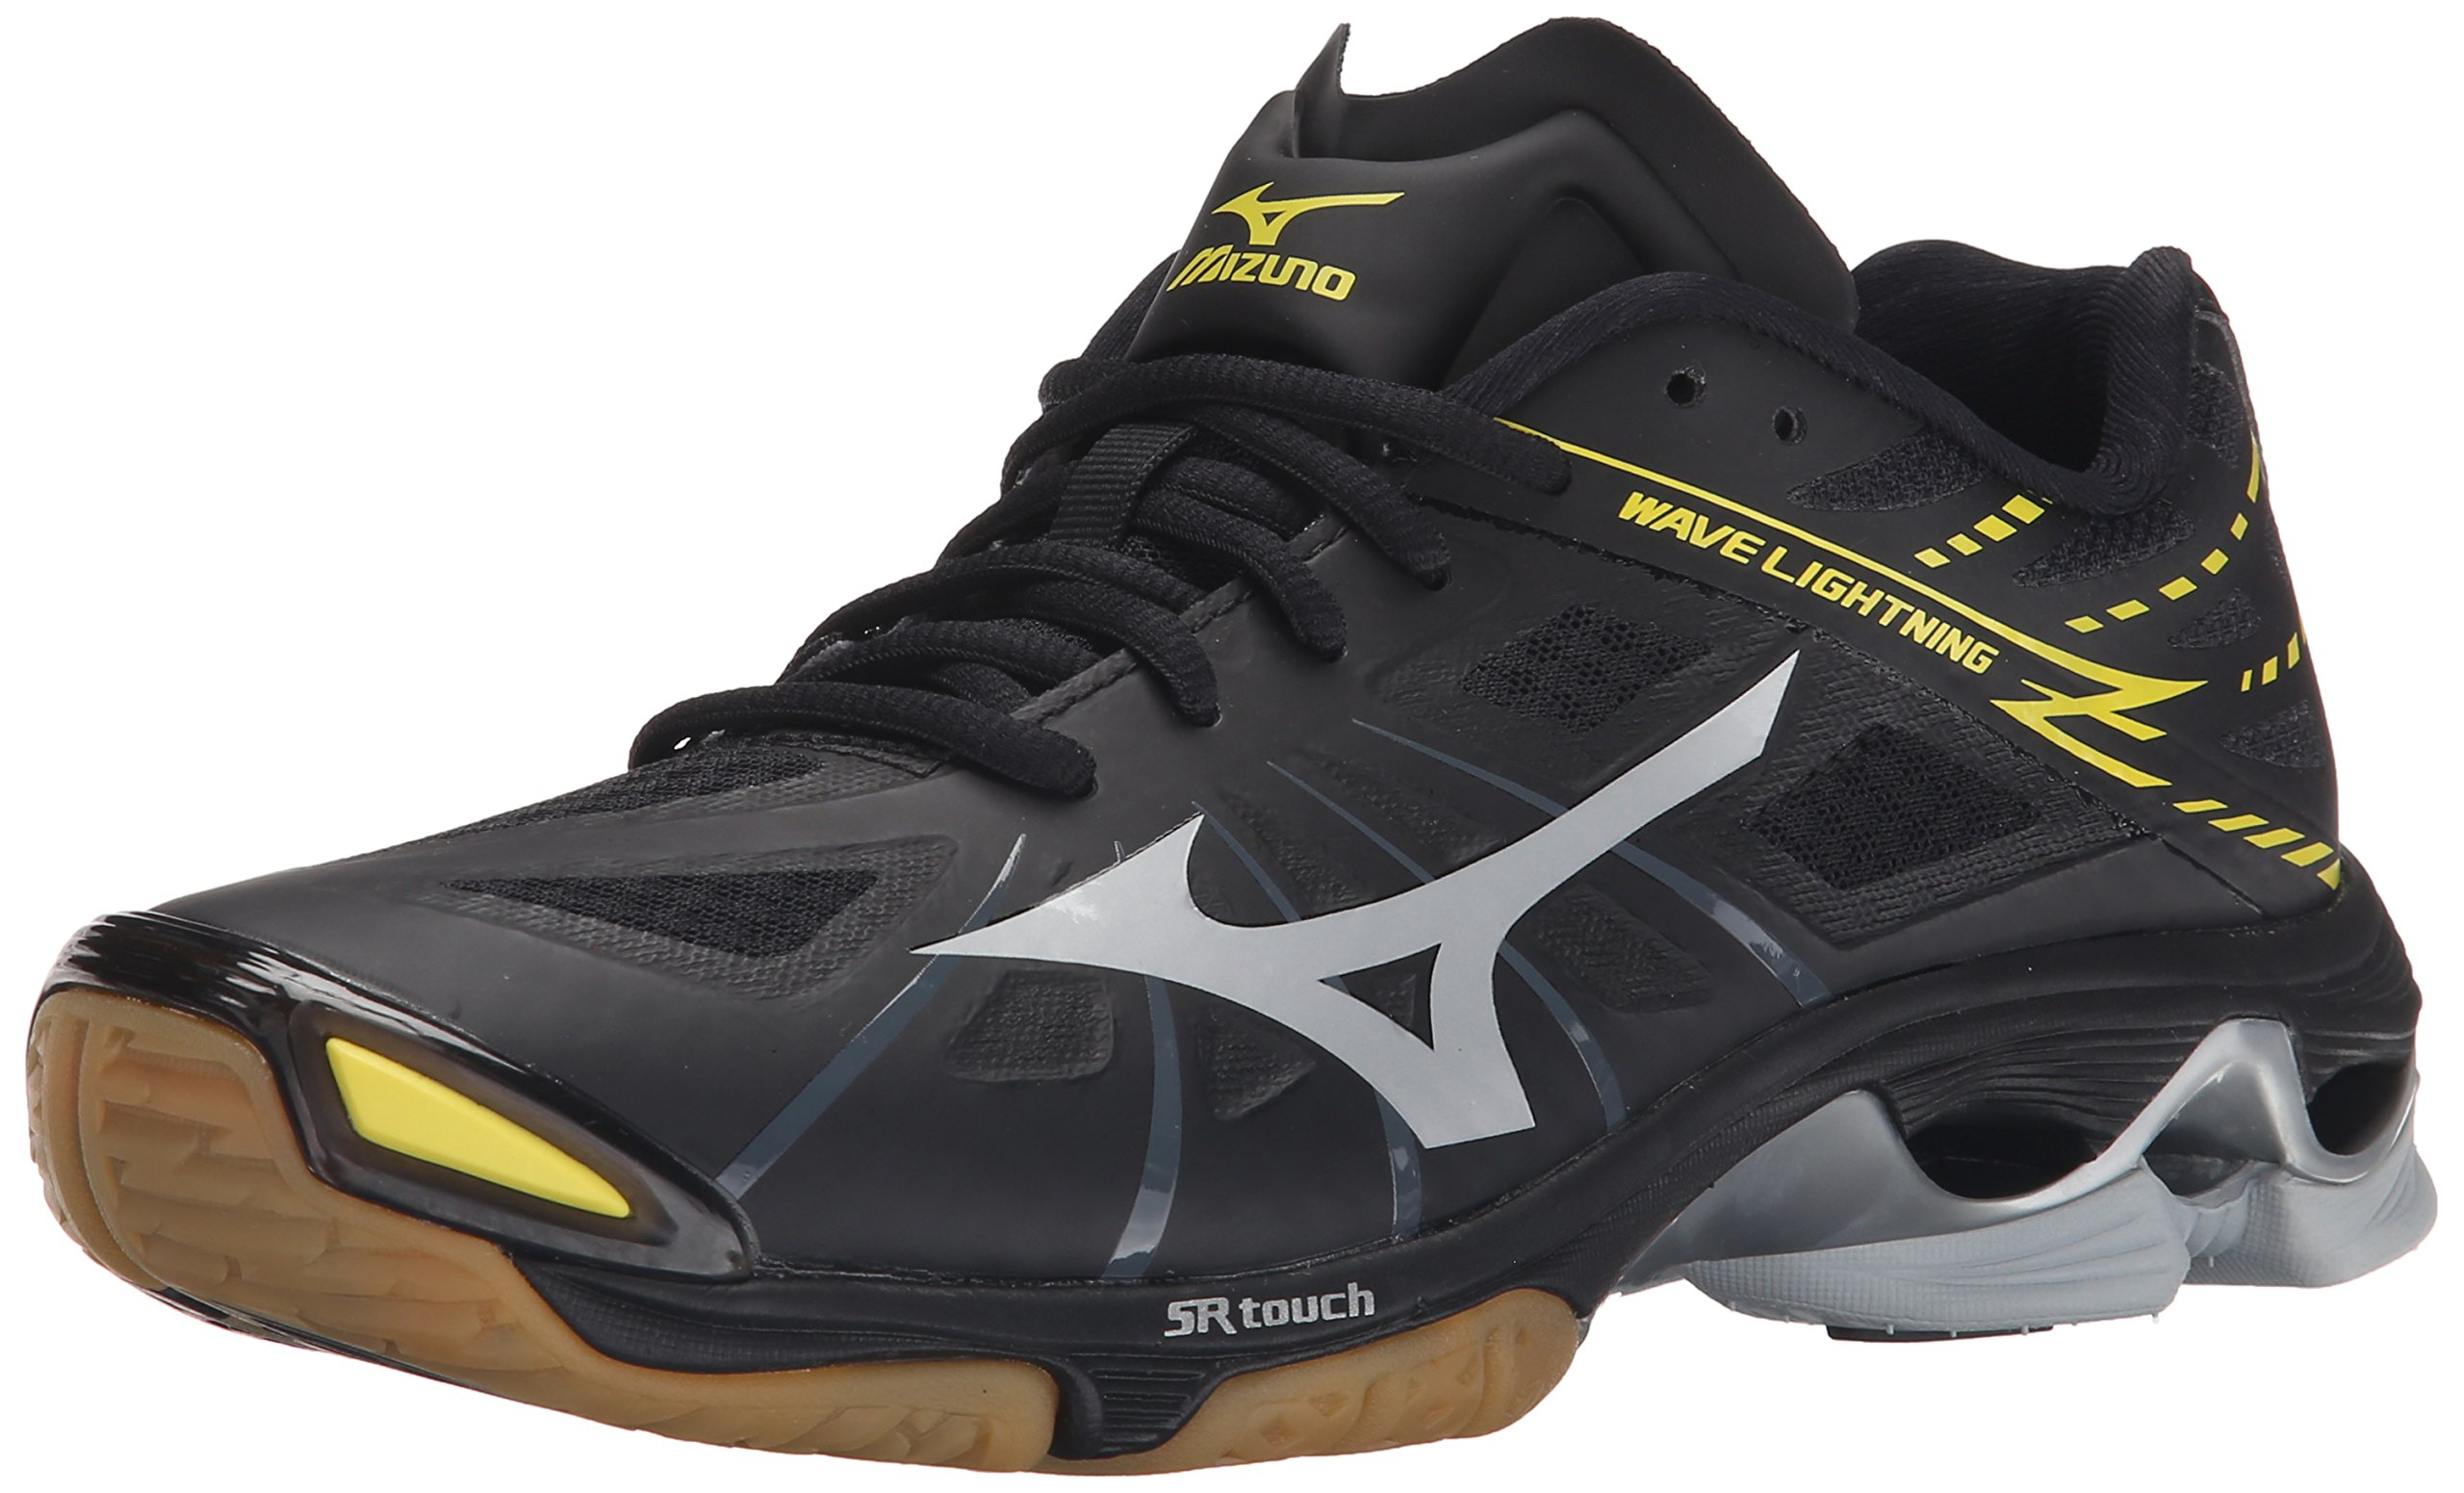 Mizuno Men's Wave Lightning Z BK-SL Volleyball Shoe, Black/Silver, 14 D US